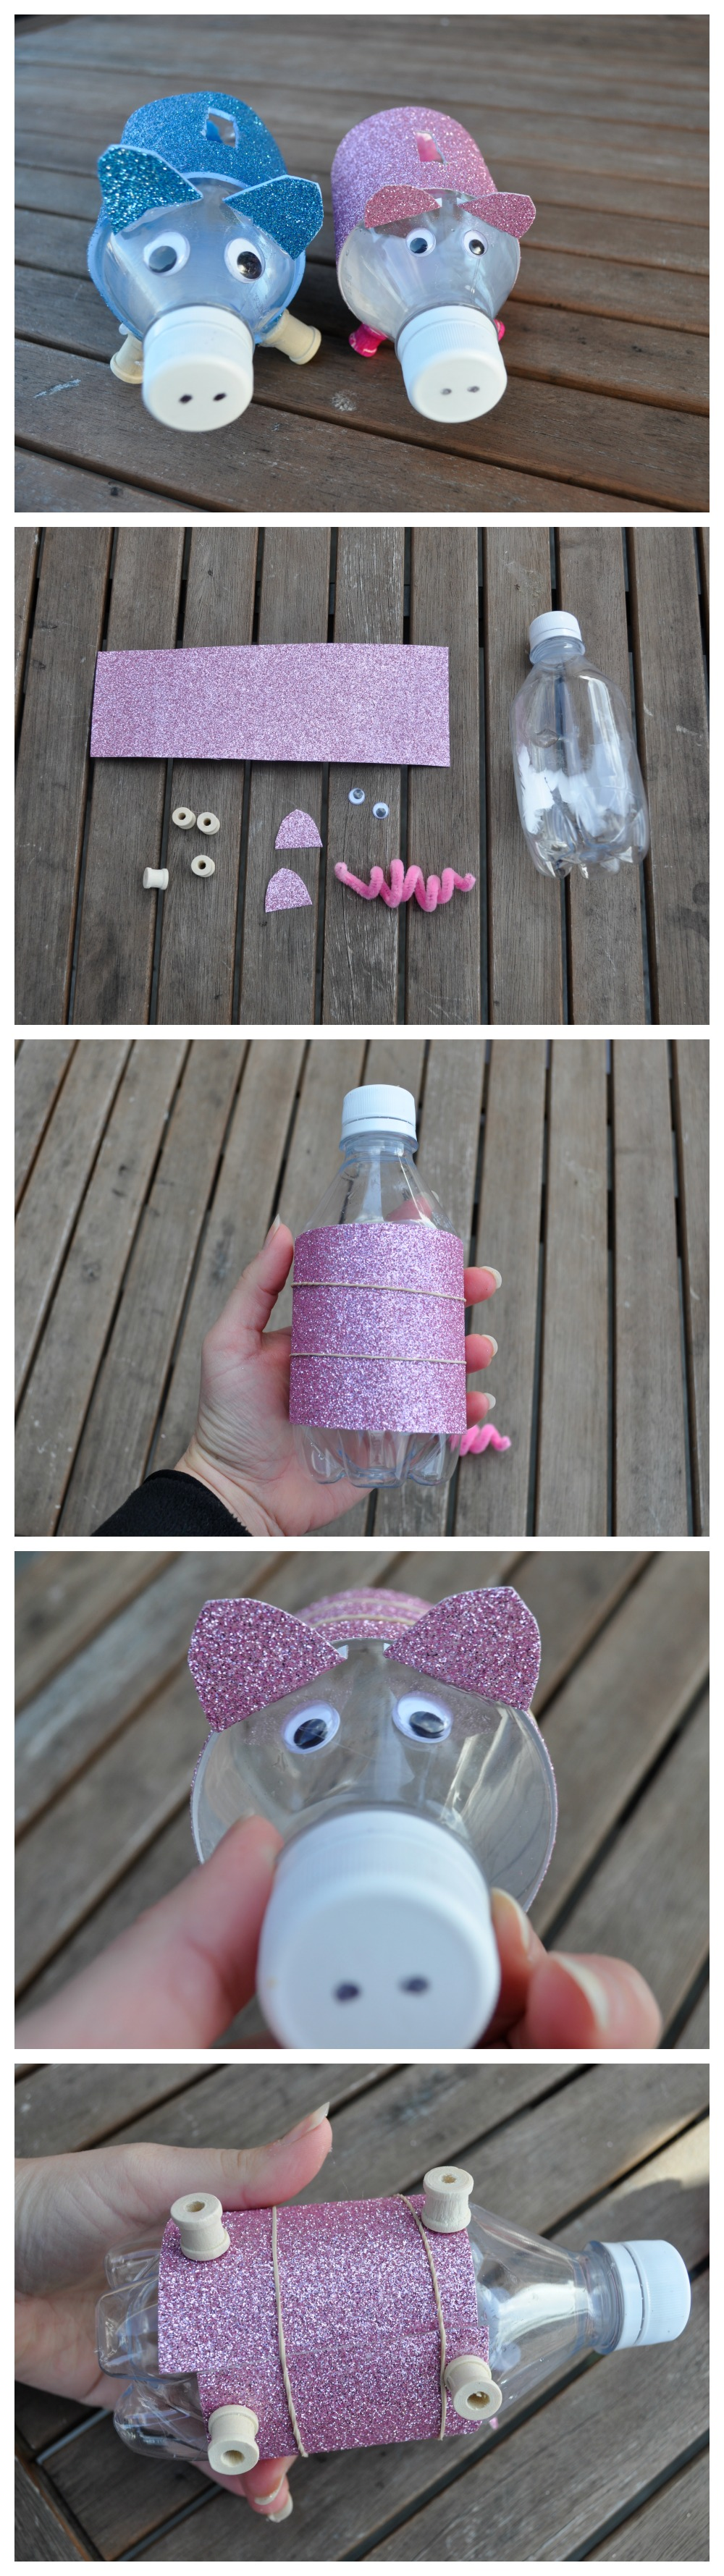 bottle piggy bank - a fun way for kids to save